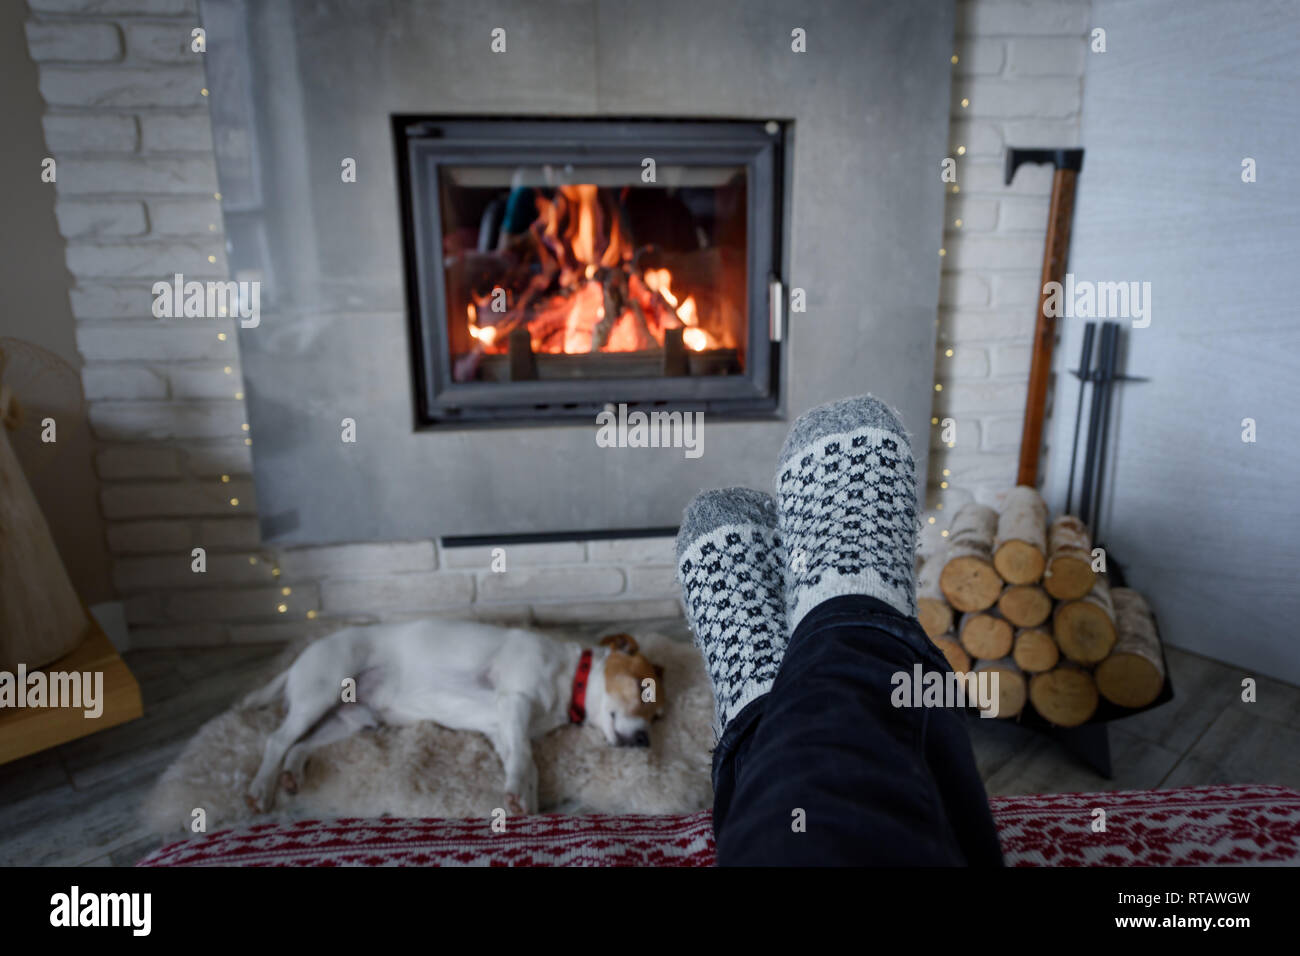 Burning fireplace and man feet in wool socks on foreground. Hygge concept - Stock Image